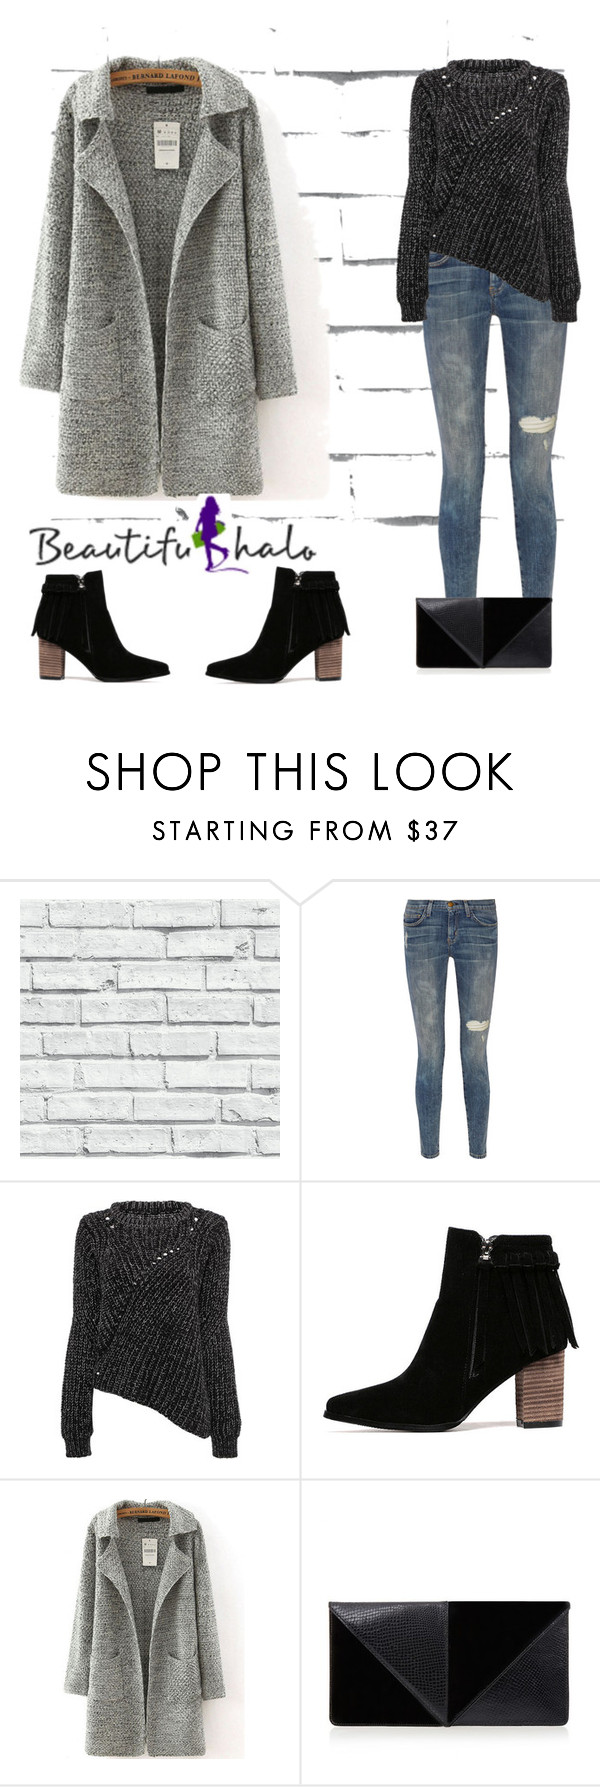 """NYC"" by janeellie ❤ liked on Polyvore featuring Current/Elliott, UN United Nude, women's clothing, women's fashion, women, female, woman, misses and juniors"